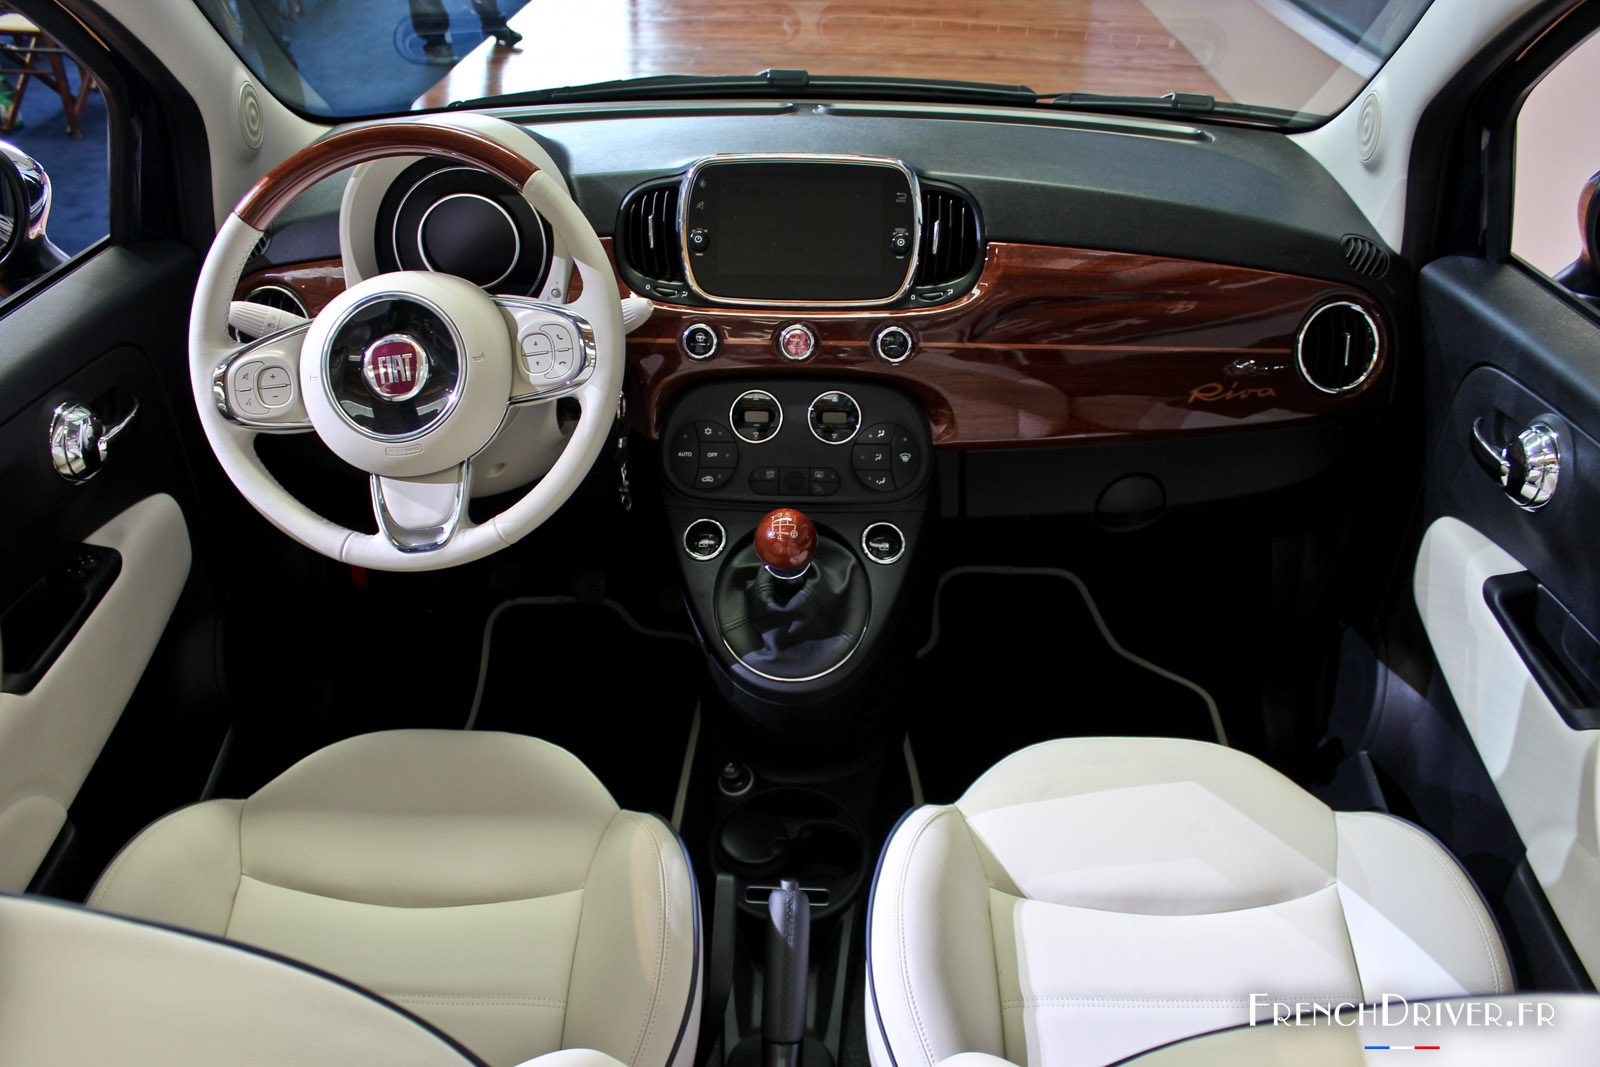 fiat 500 cabriolet with Respond on Quelle Fiat 500 Restylee Choisir 105377 as well Fiat 600d Engine Parts furthermore 7209 No Wheel Covers Year I Like moreover Fiat500pickup furthermore respond.